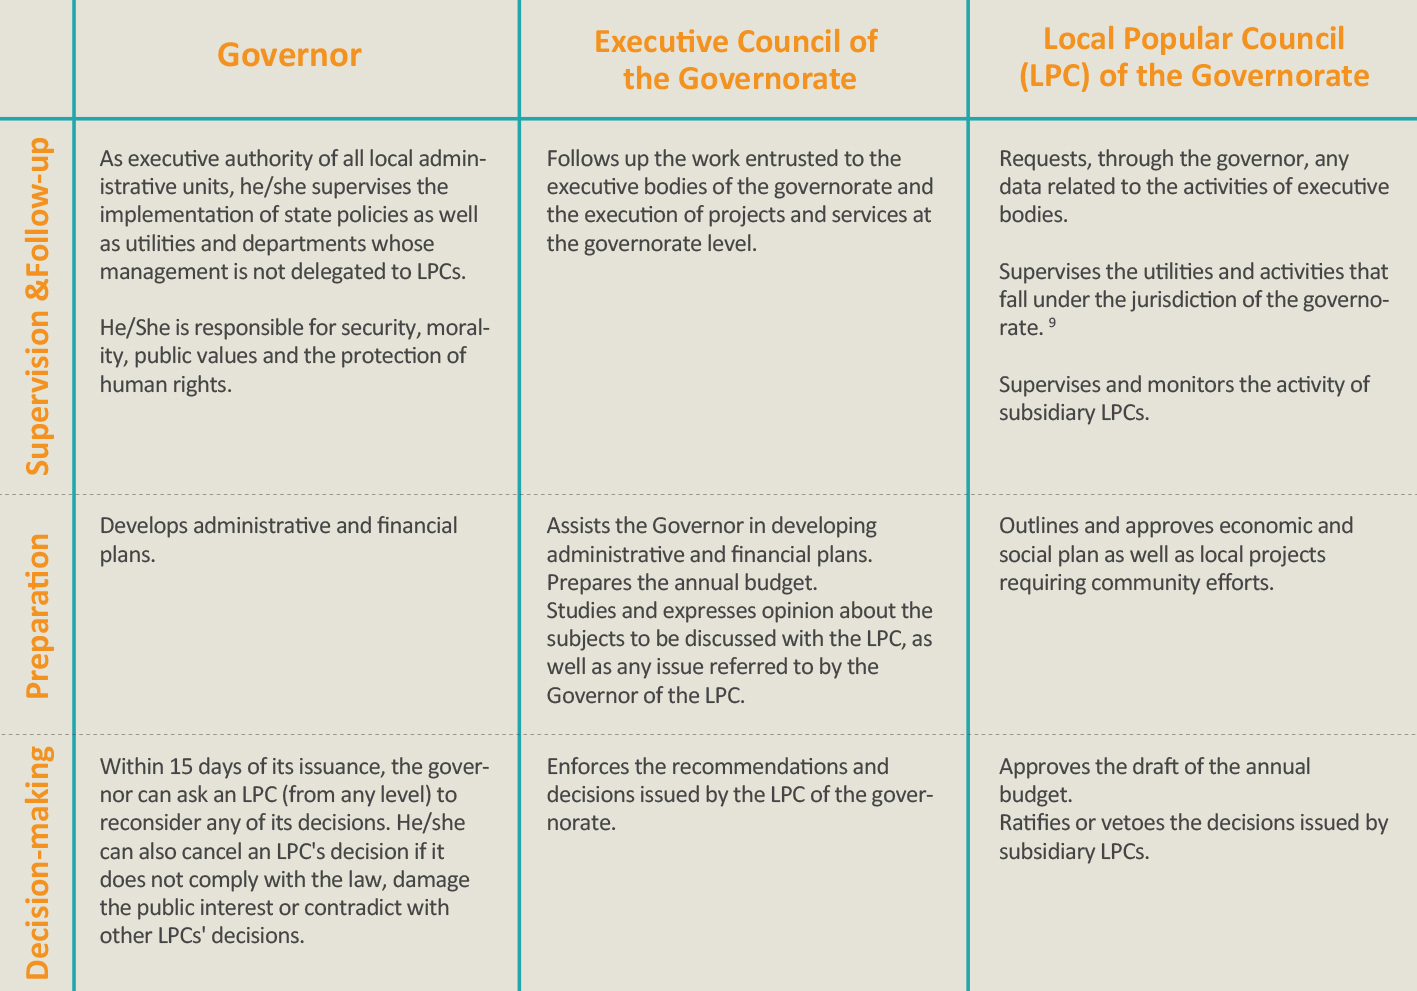 Summary of Governorates' Responsibilities in Egypt according the 2014 Draft of LAL. (Sources: Draft of Local Administration Law of 2014; Nada, 2013.)